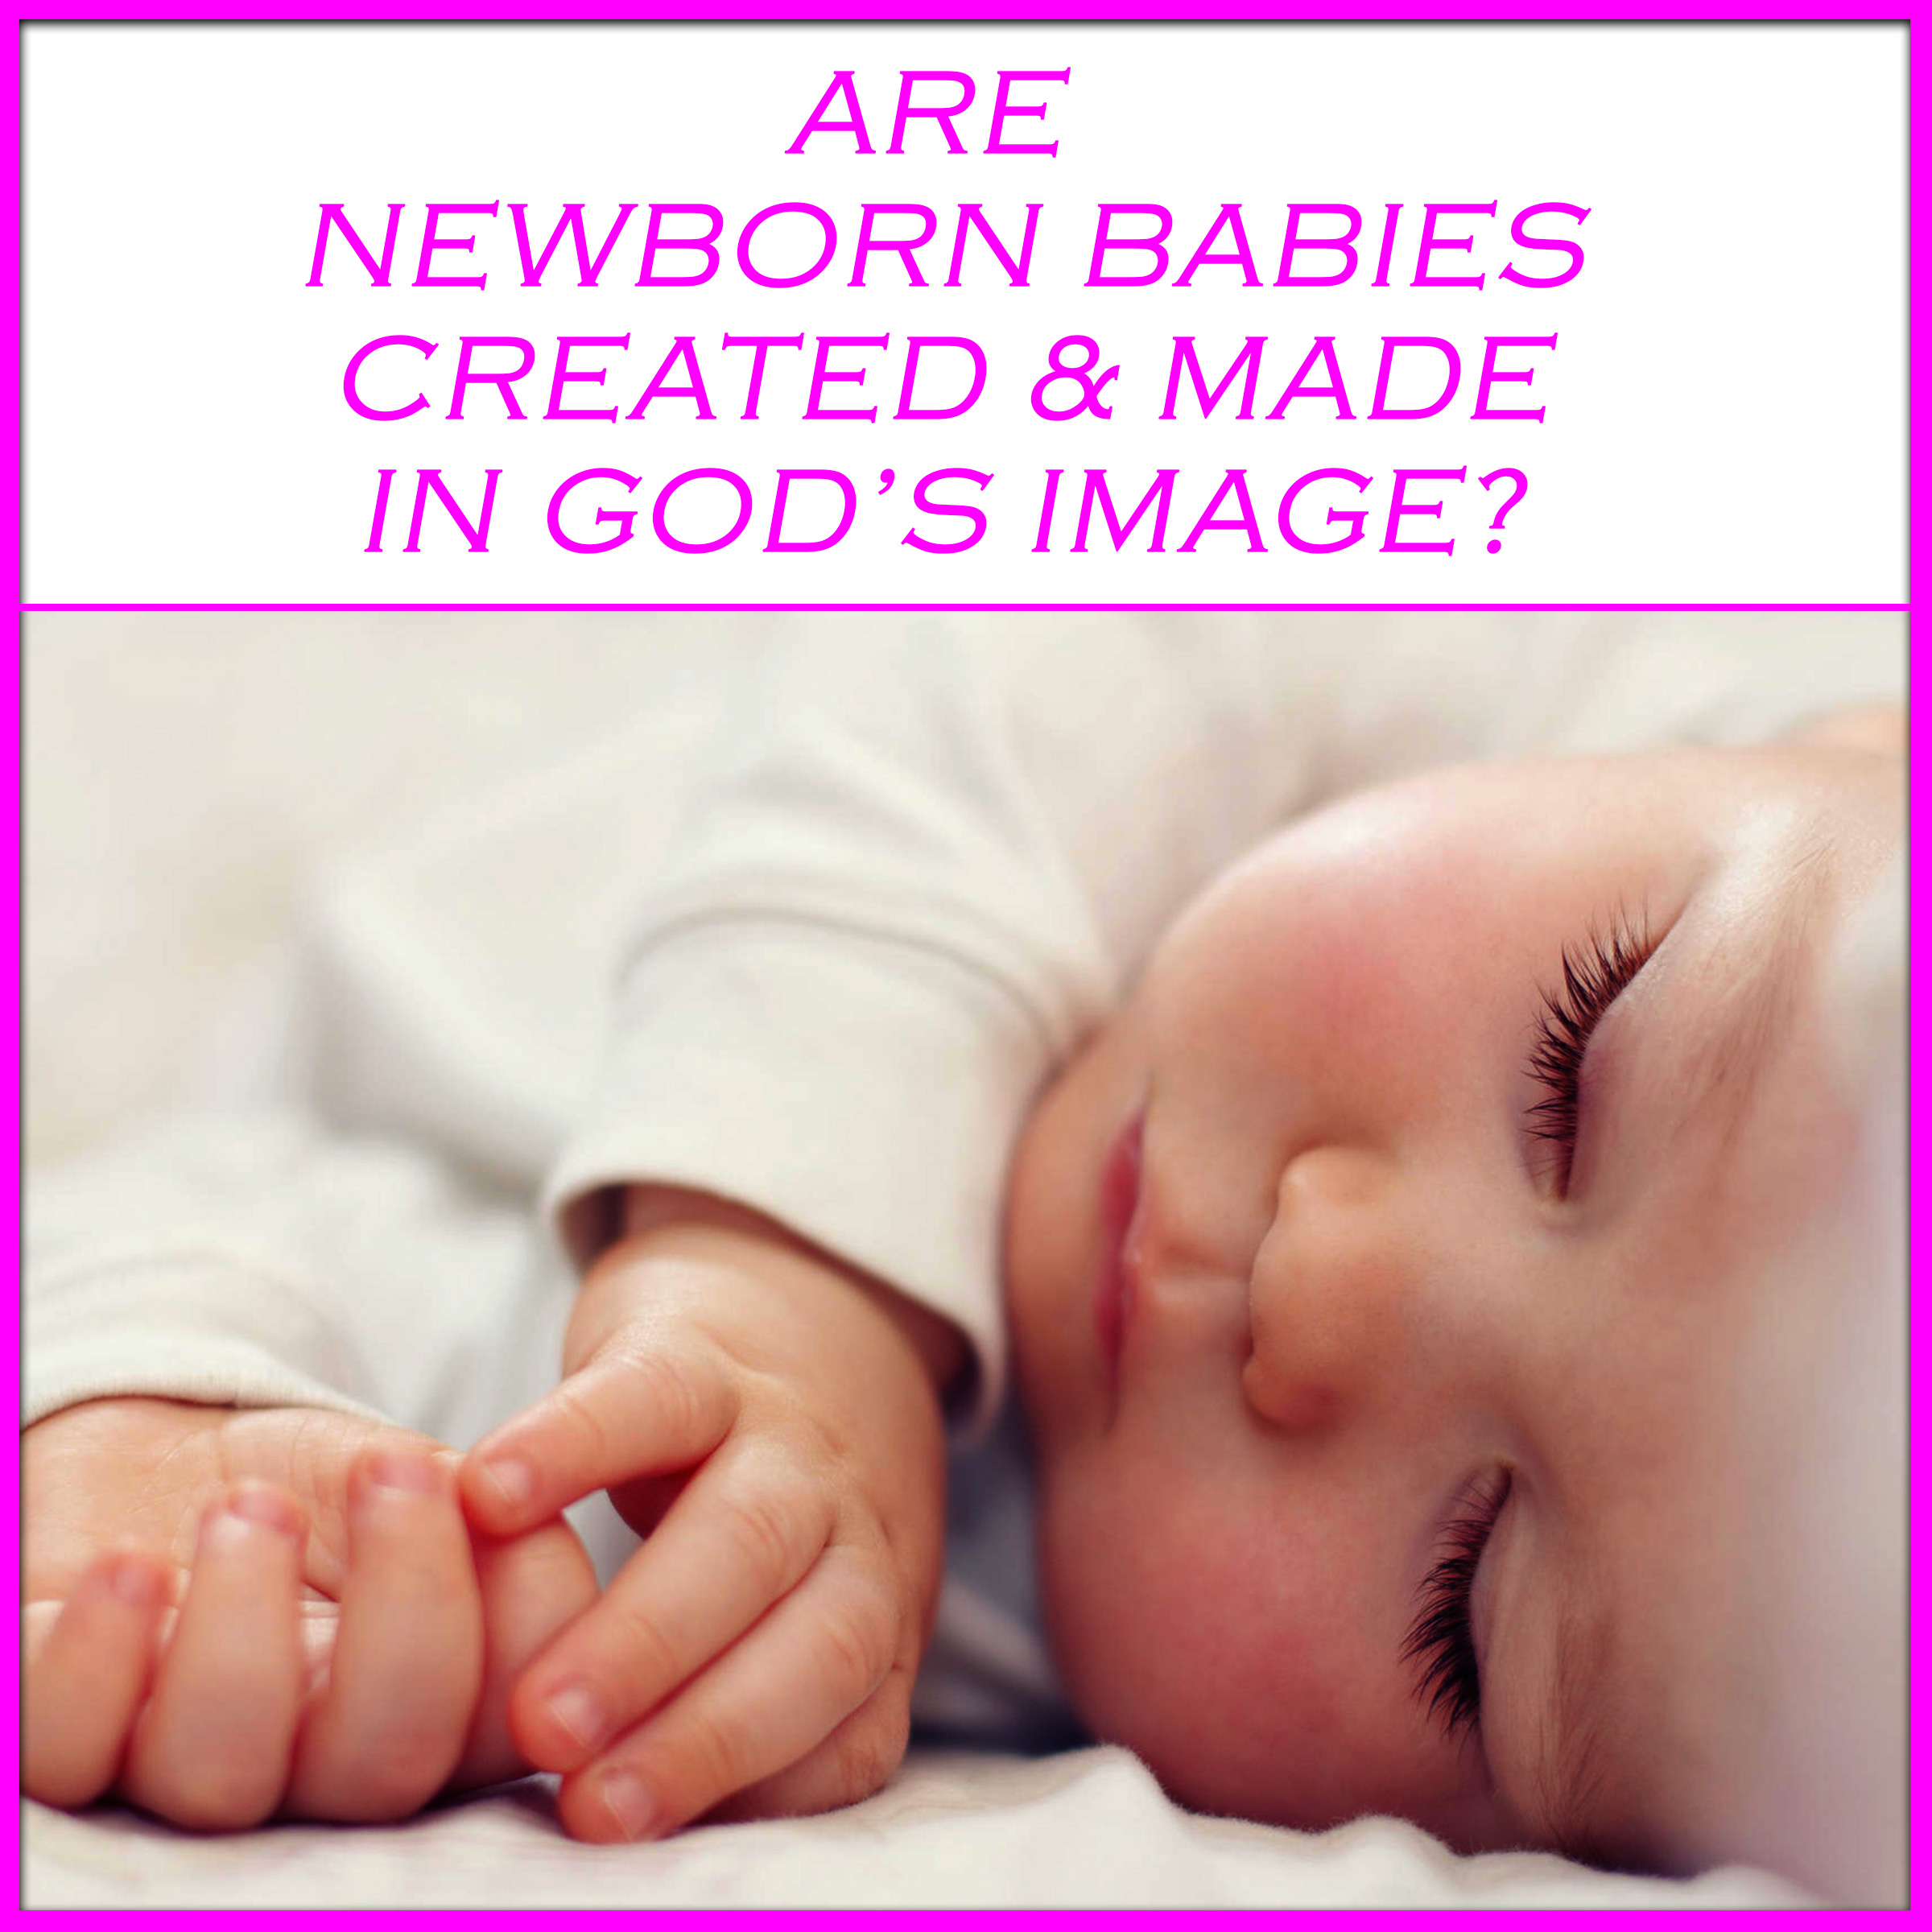 Are Newborn Babies Created & Made in God's Image?